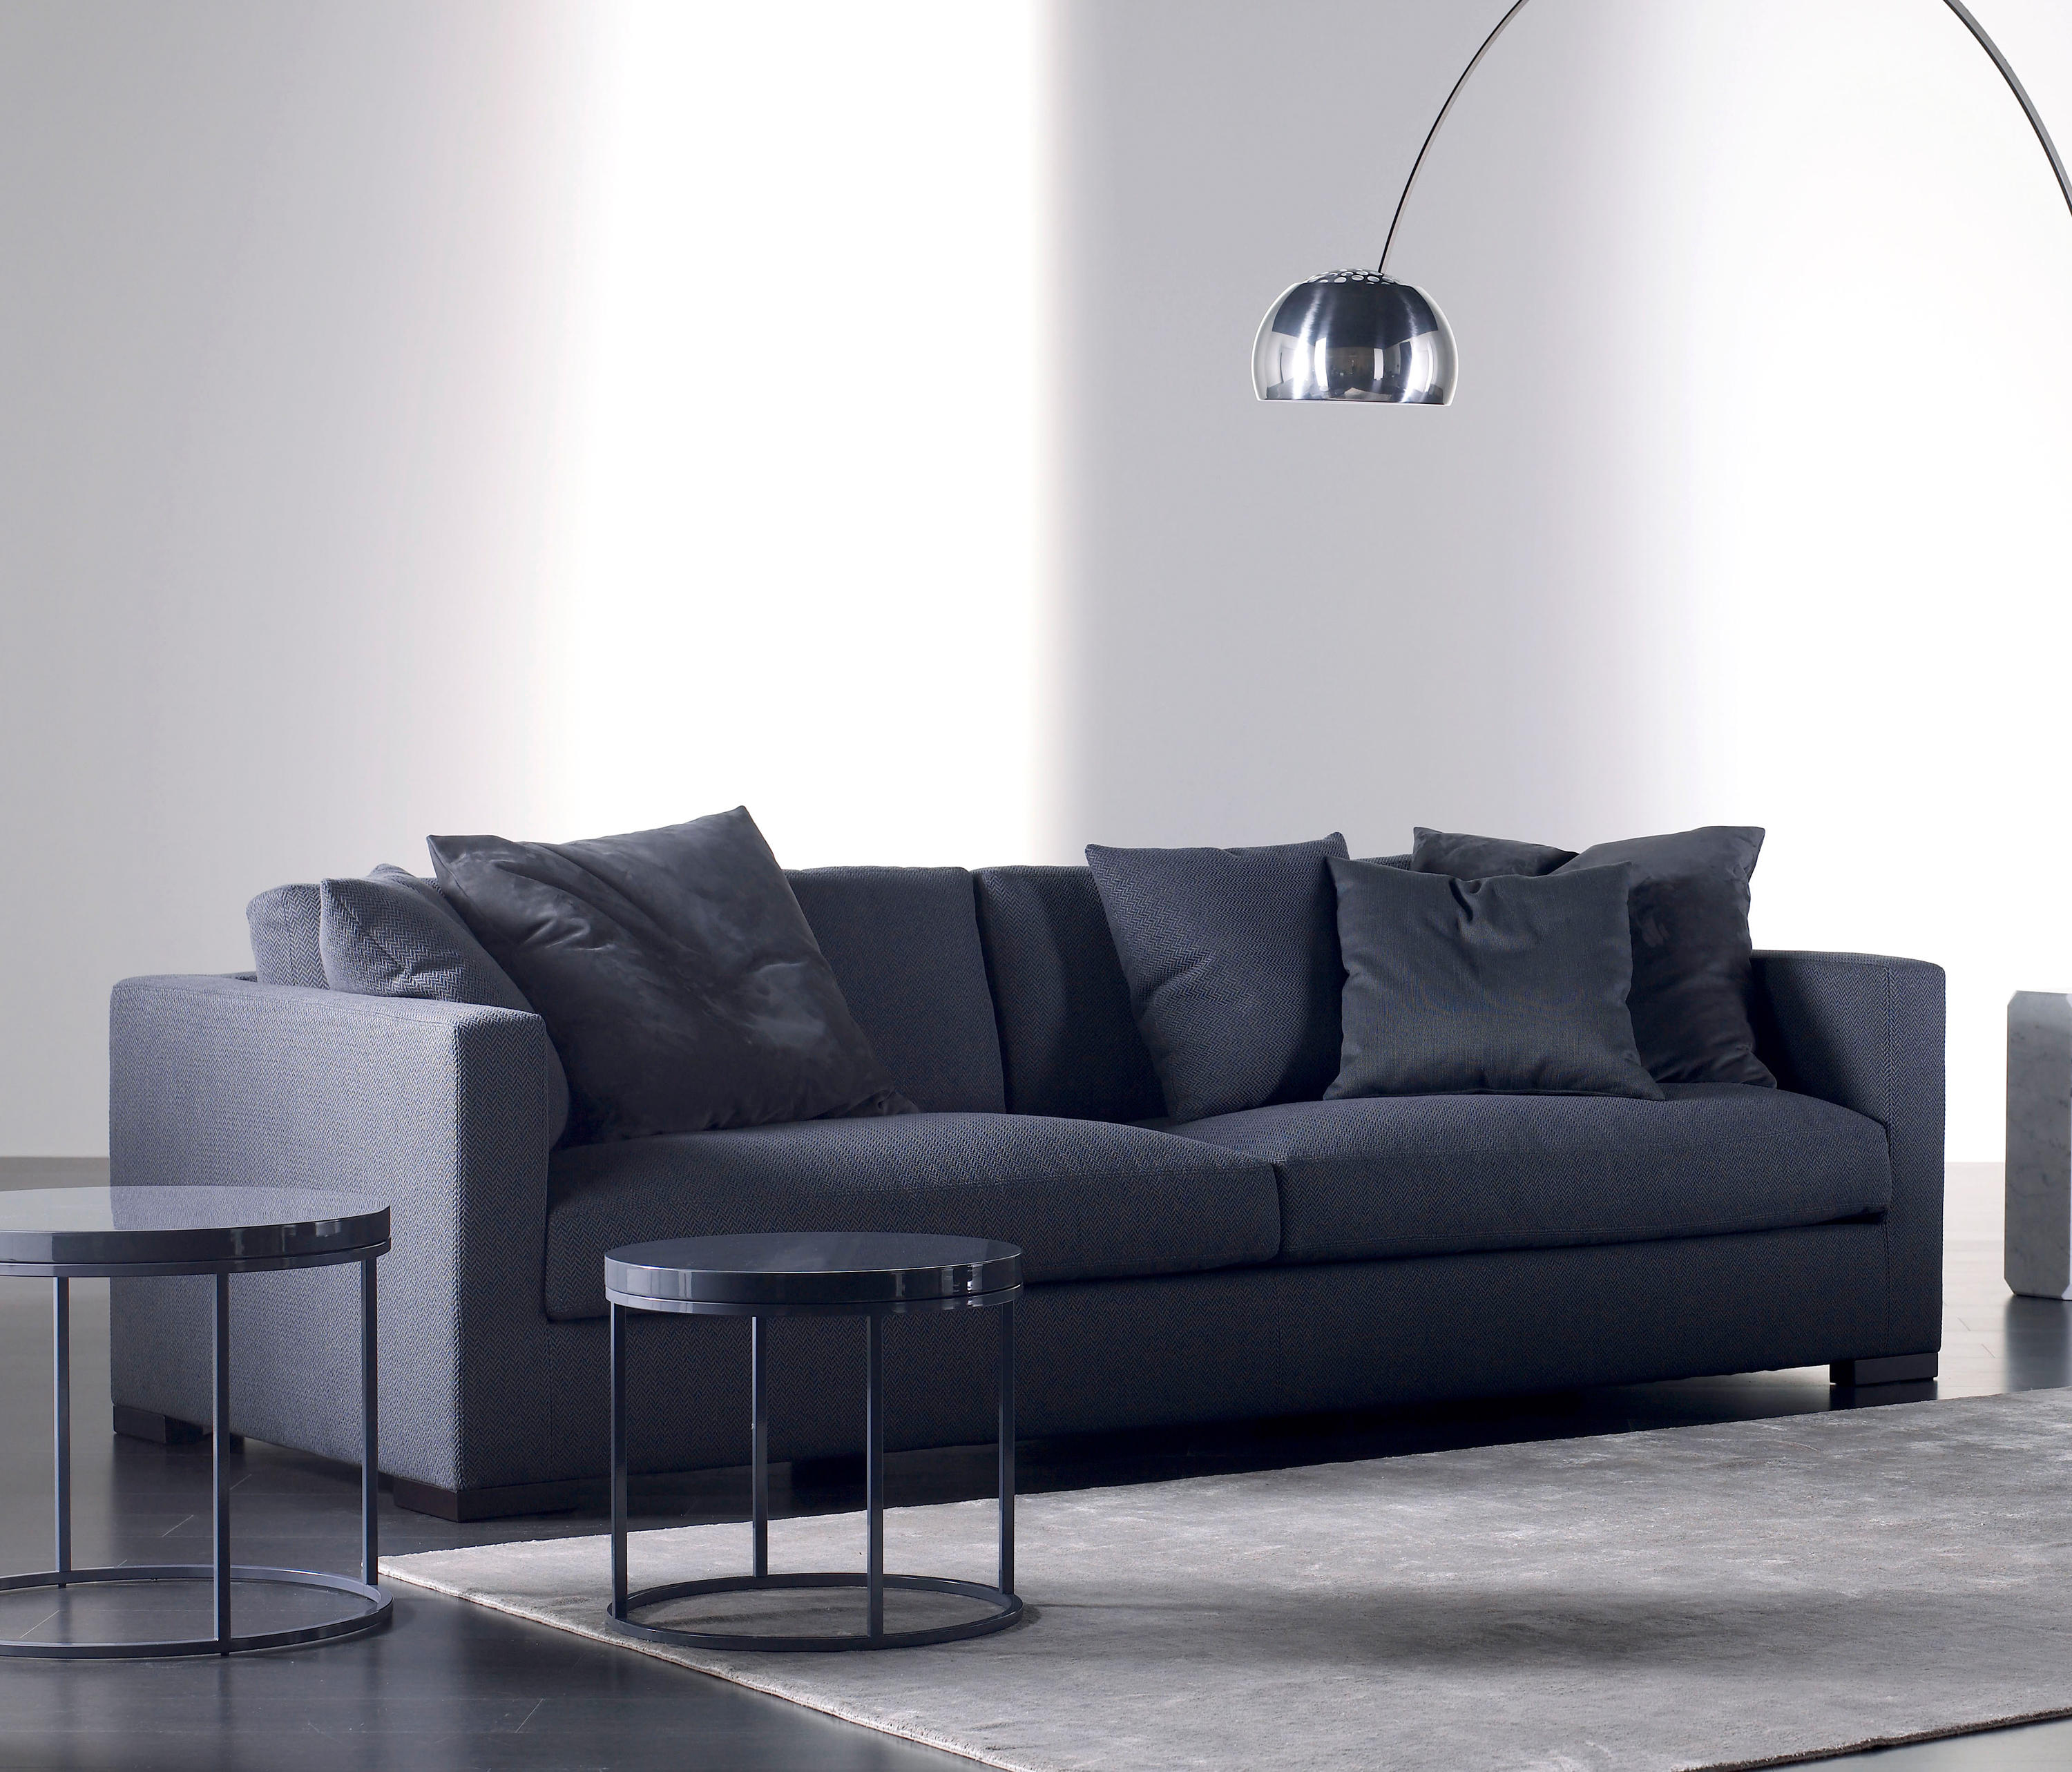 belmon sofa xl lounge sofas from meridiani architonic. Black Bedroom Furniture Sets. Home Design Ideas